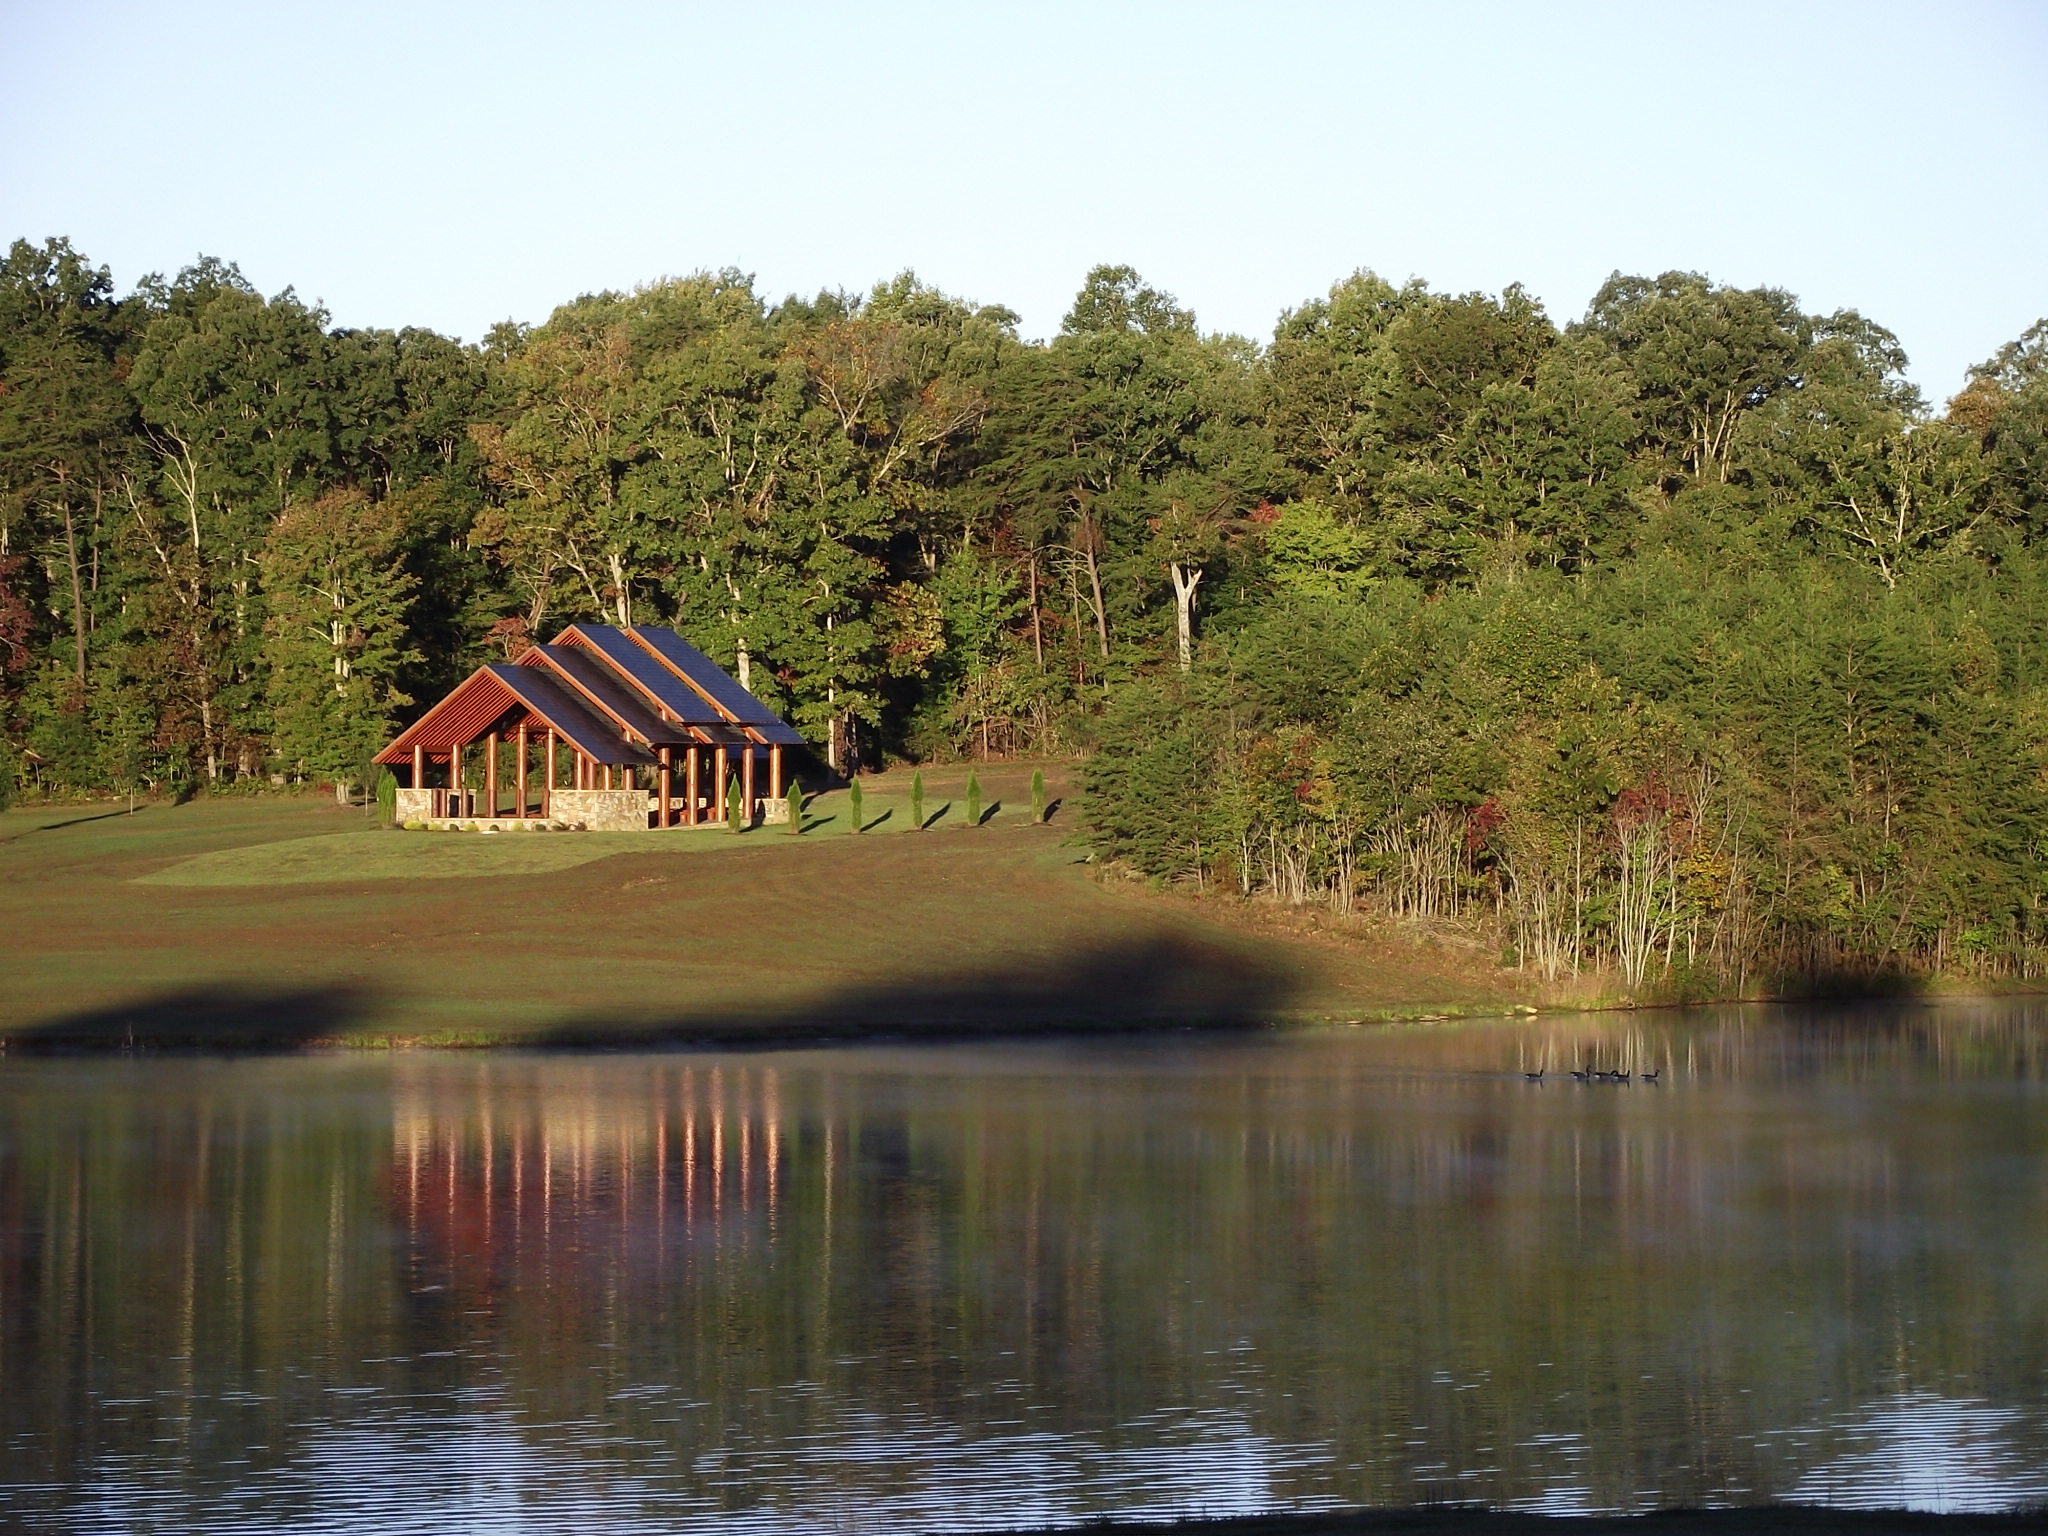 MCCS Fall Conference at Latimer Reservation